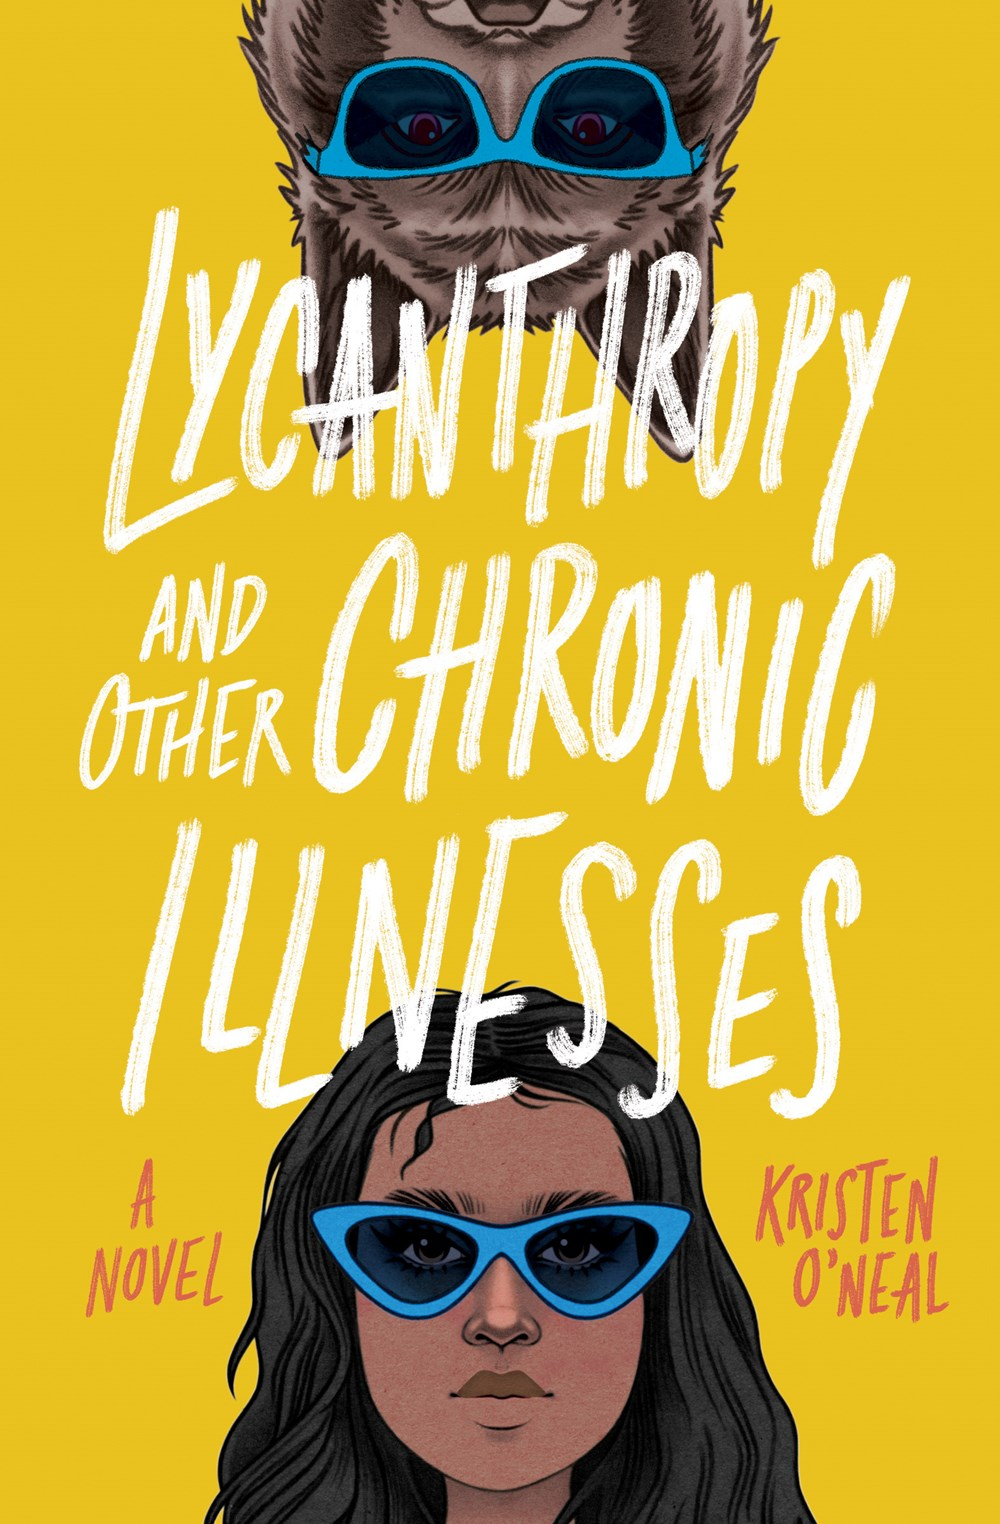 Lycanthropy and Other Chronic Illnesses by Kristen O'Neal